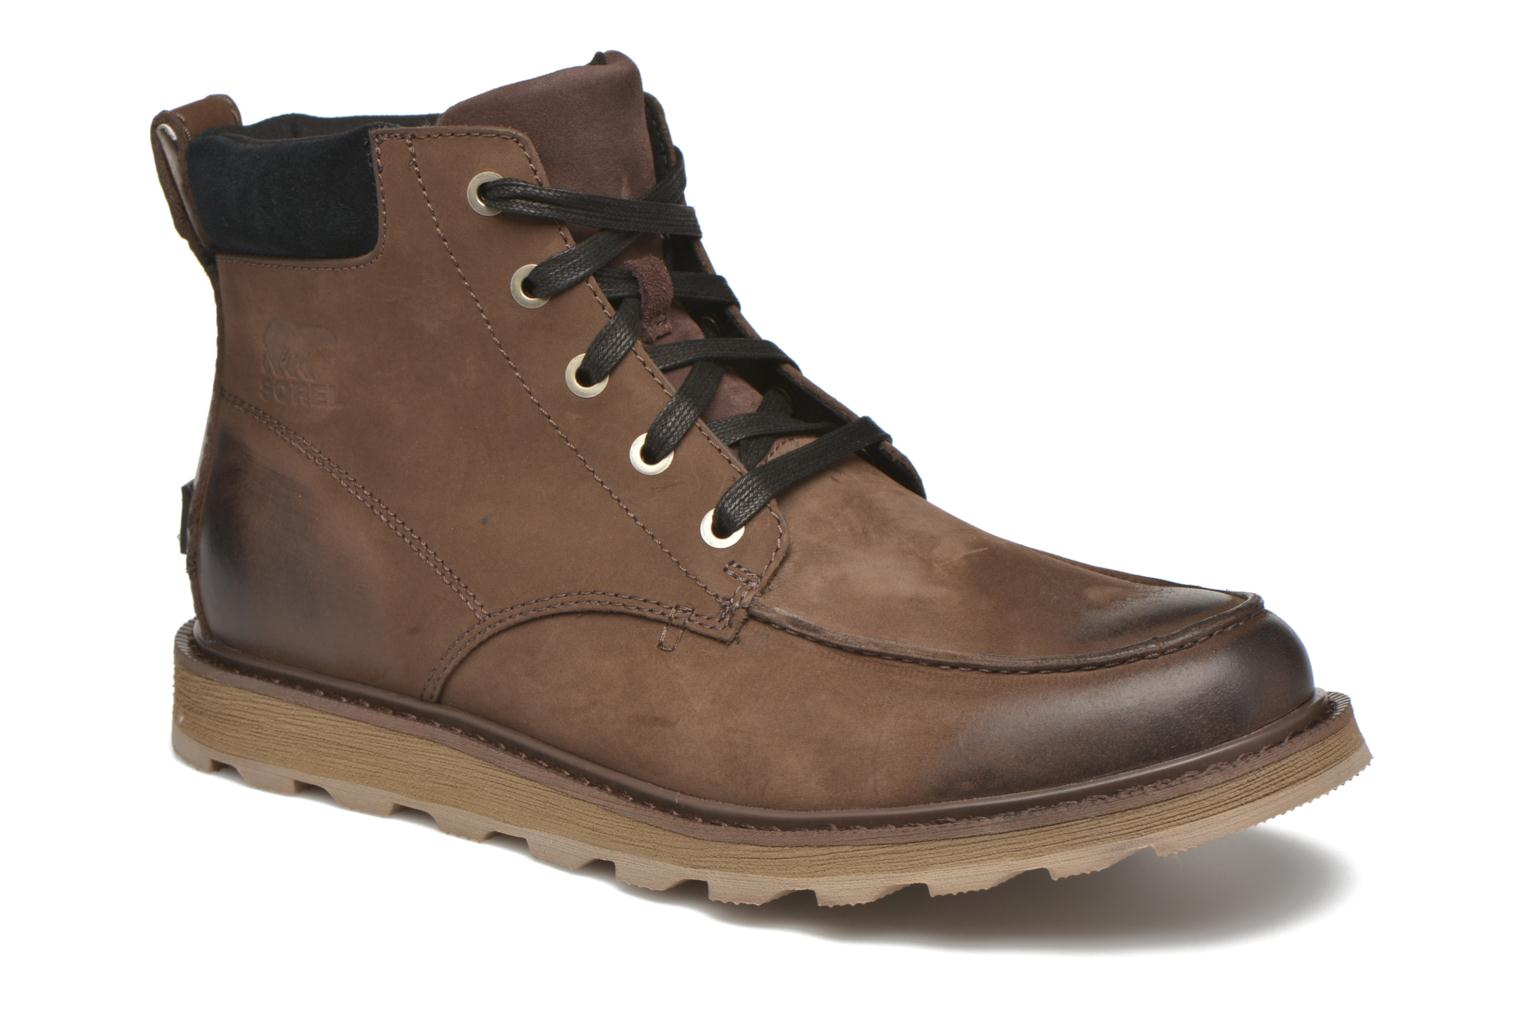 Bottines et boots Sorel Madson Moc Toe Marron vue détail/paire